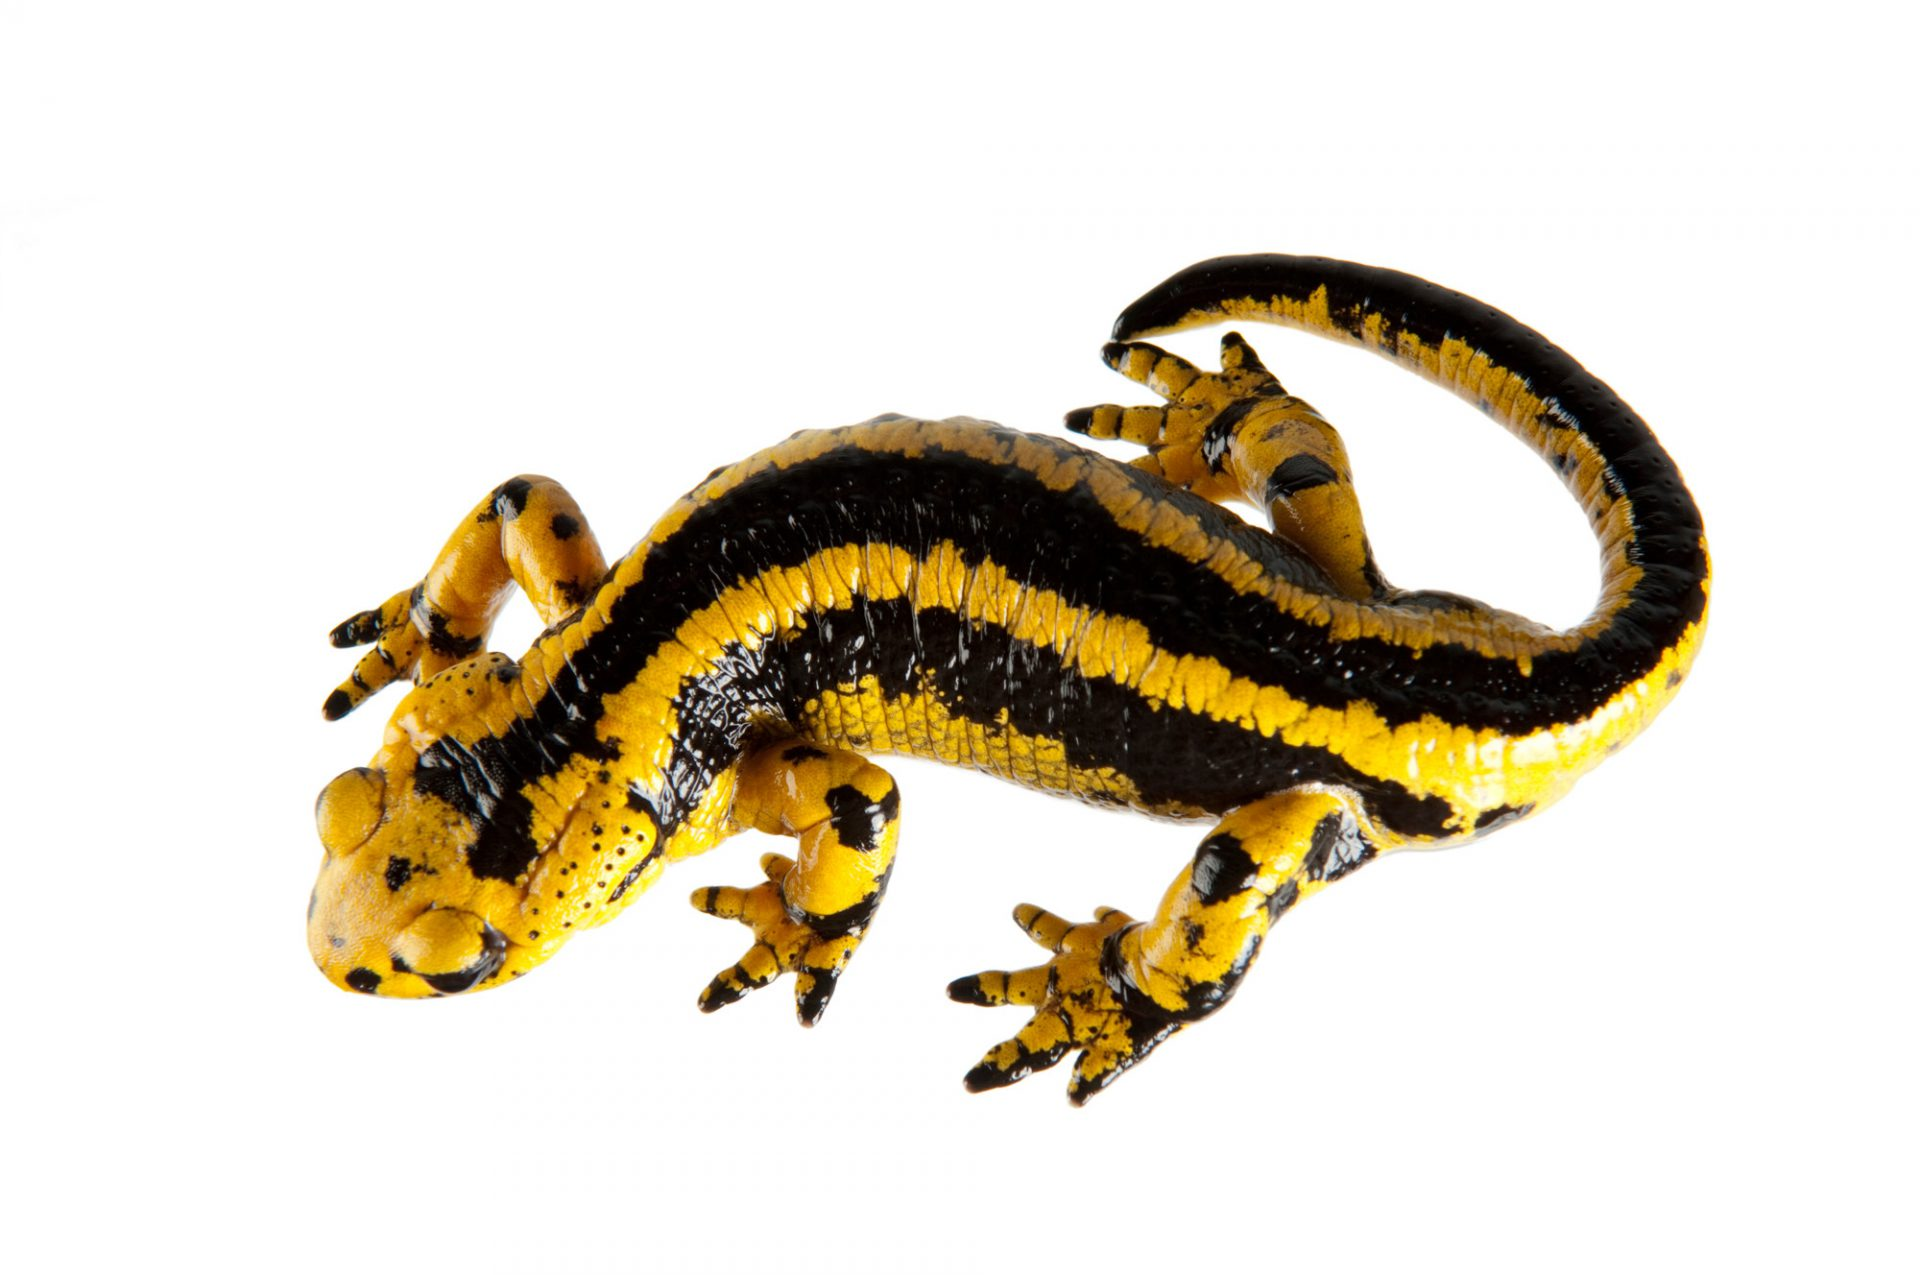 European fire salamander (Salamandra salamandra bernardezi) at the St. Louis Zoo.